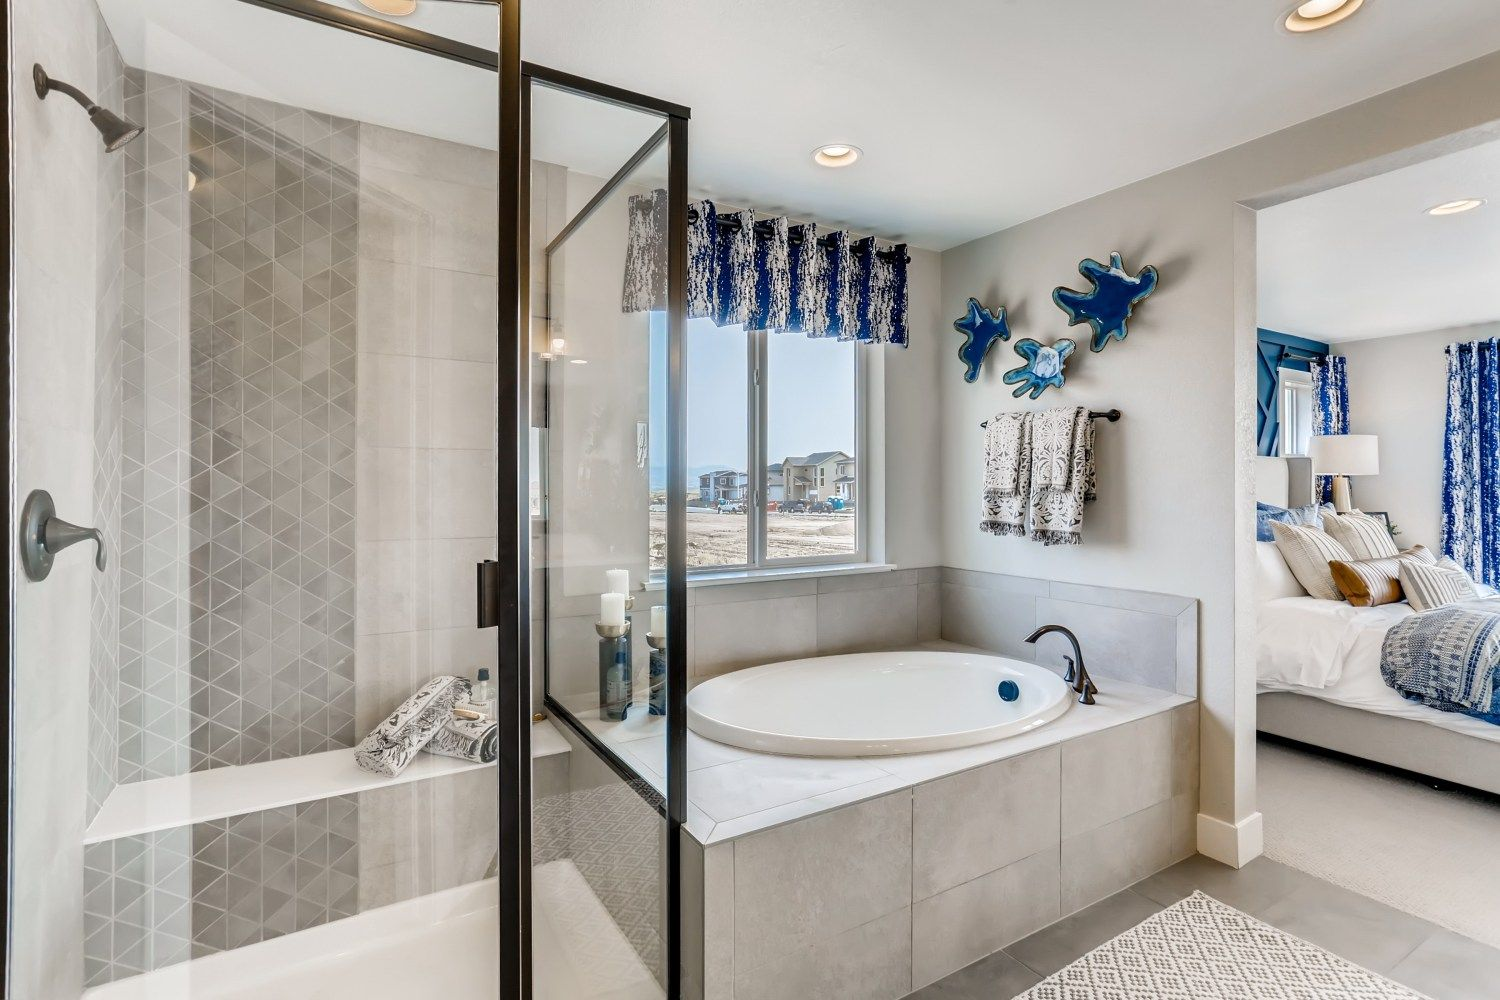 Bathroom featured in The Telluride Sterling 35s By Taylor Morrison in Denver, CO